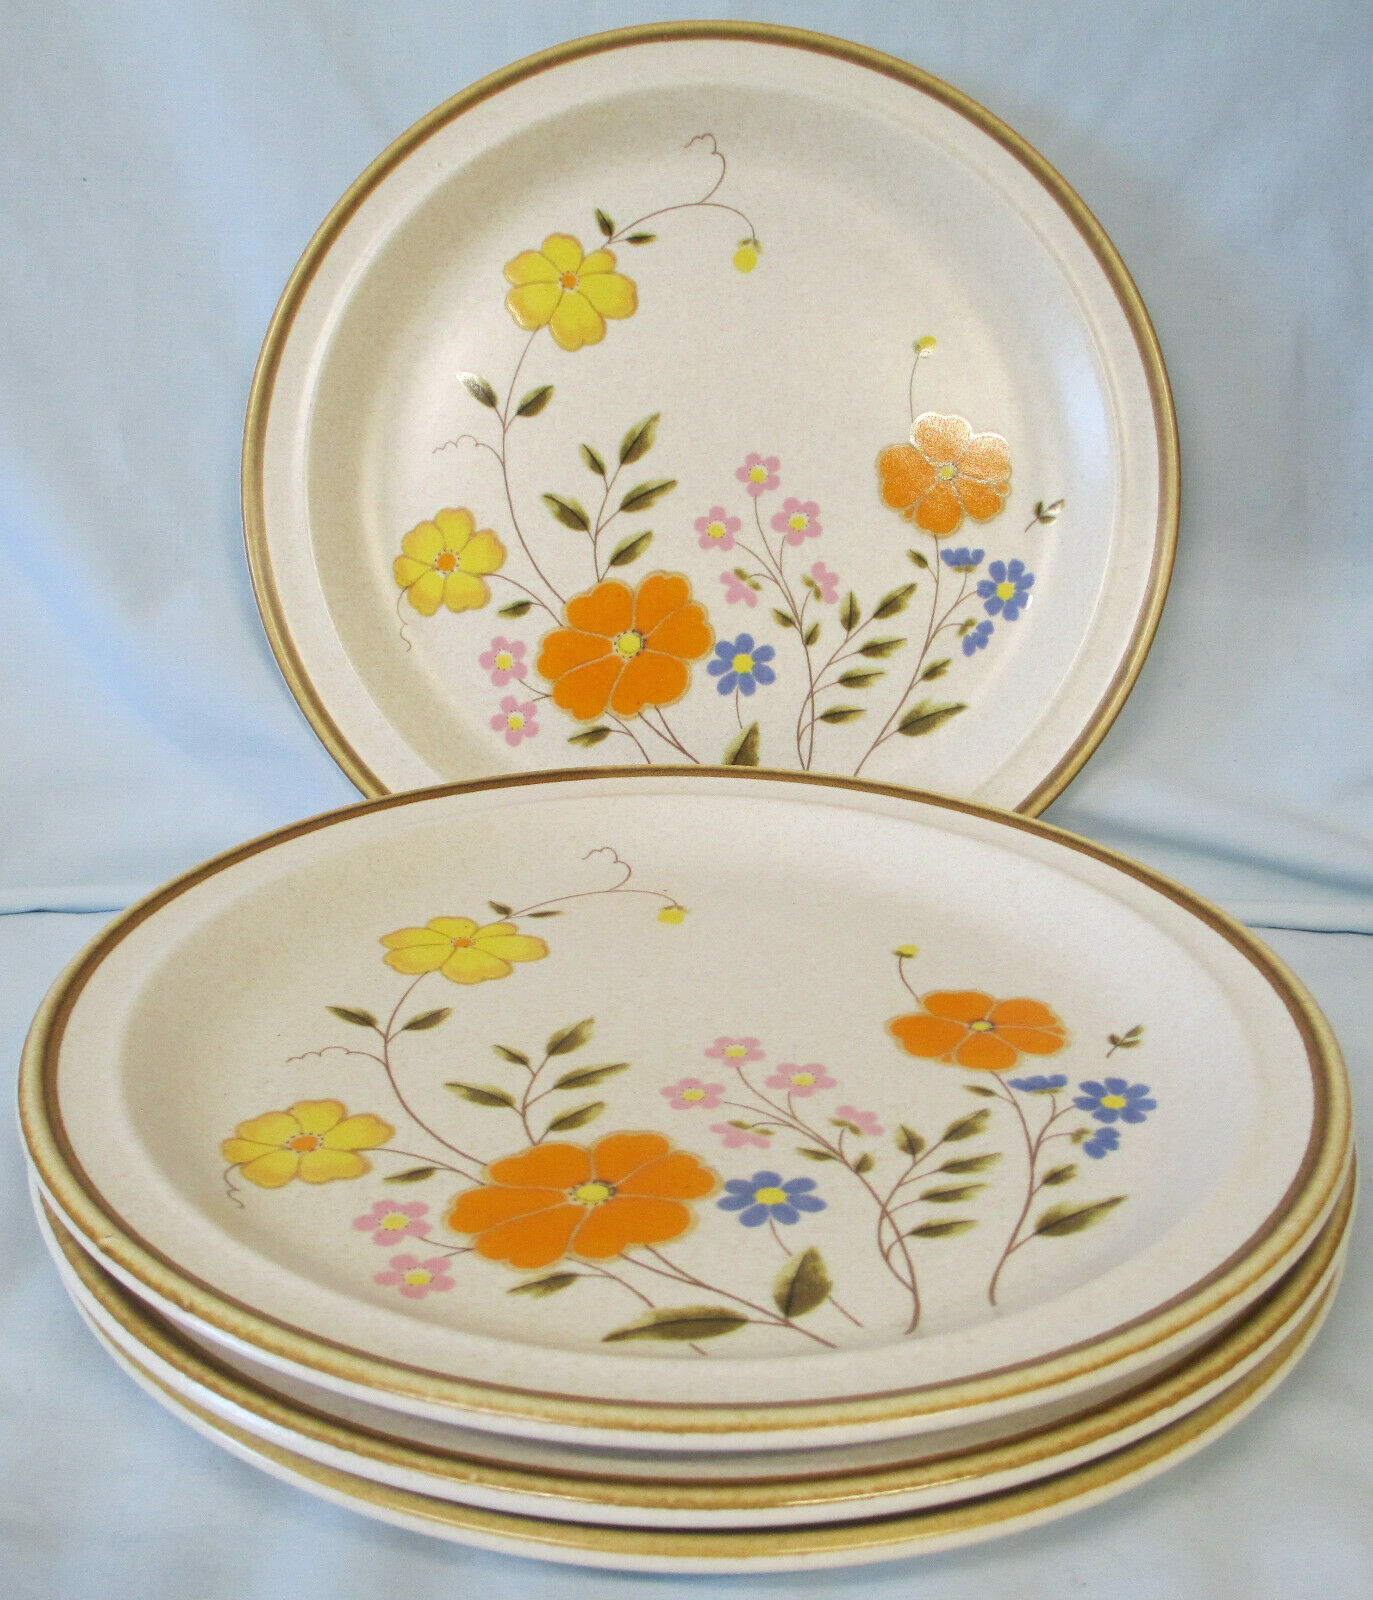 Nikko Field Flowers Dinner Plate set of 4